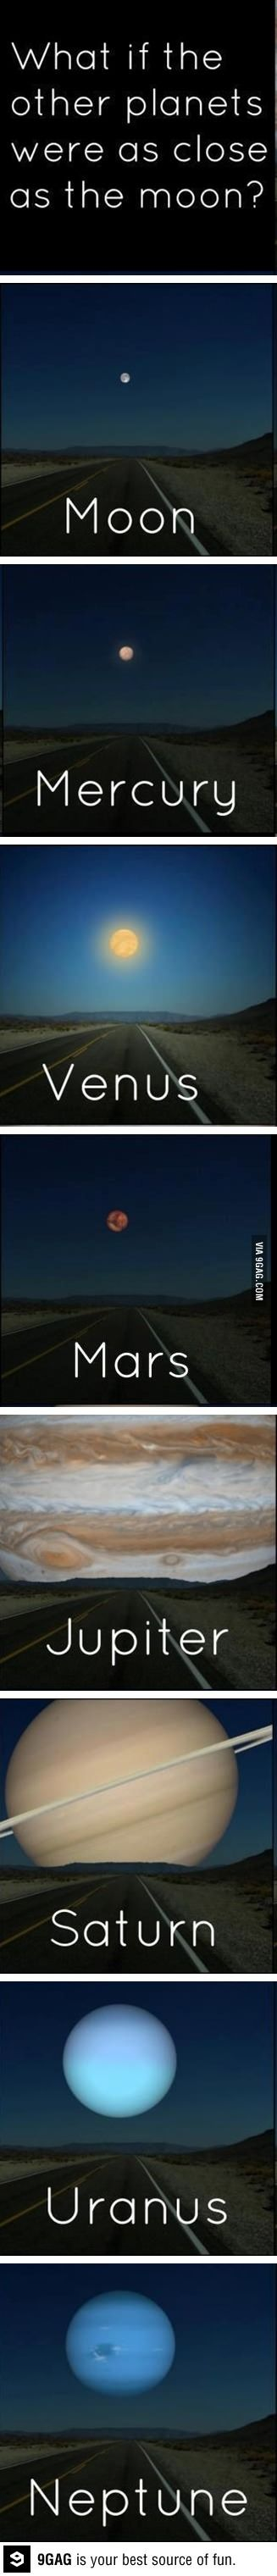 What if the other planets were as close as the moon? Neat!